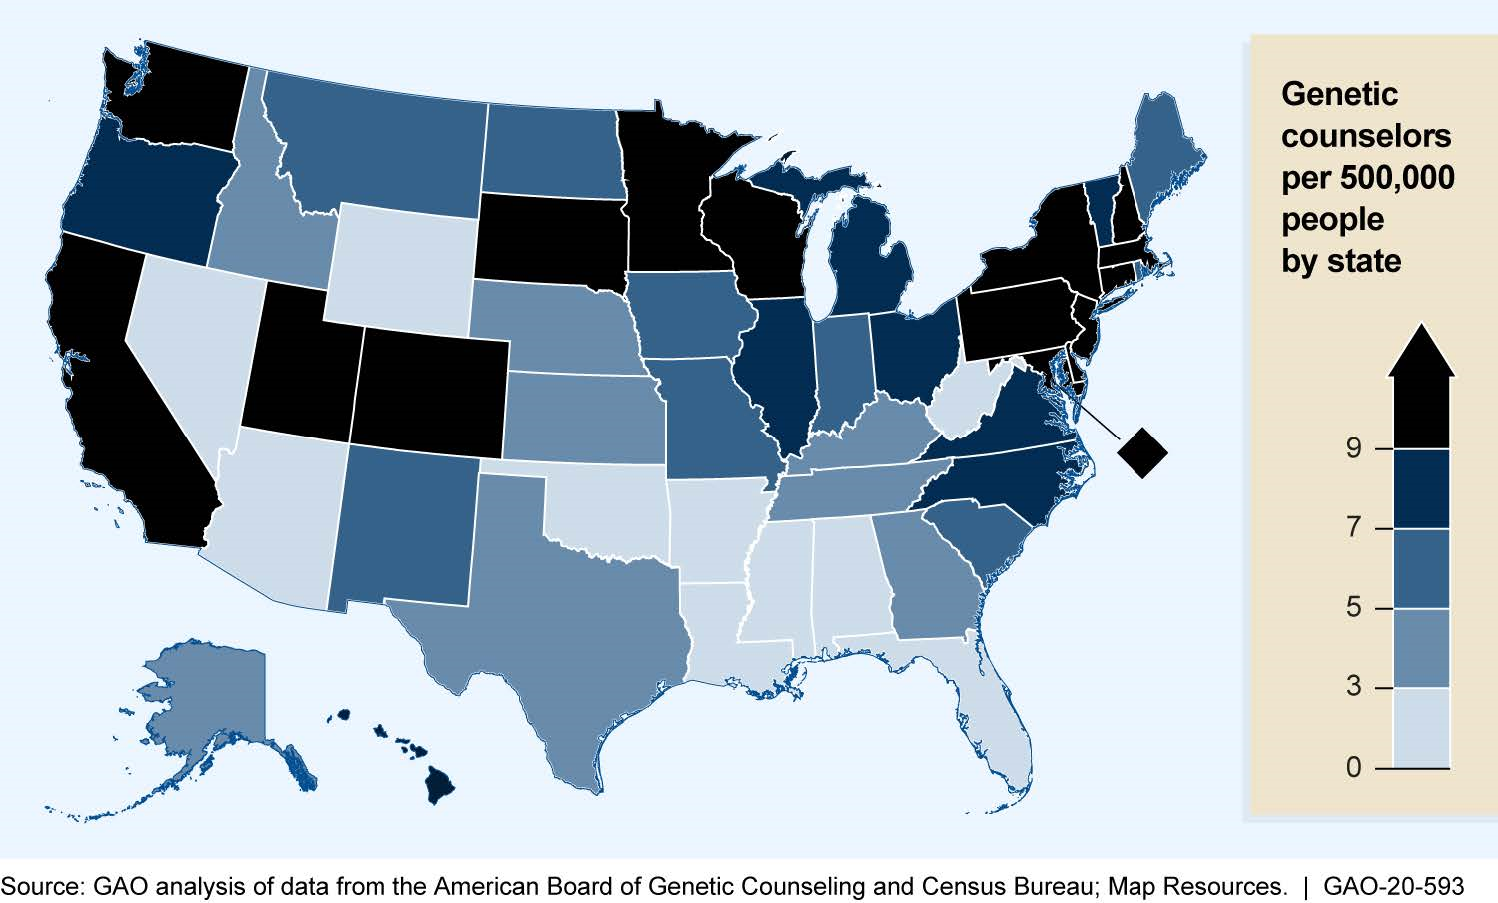 Distribution of Genetic Counselors by State, 2019